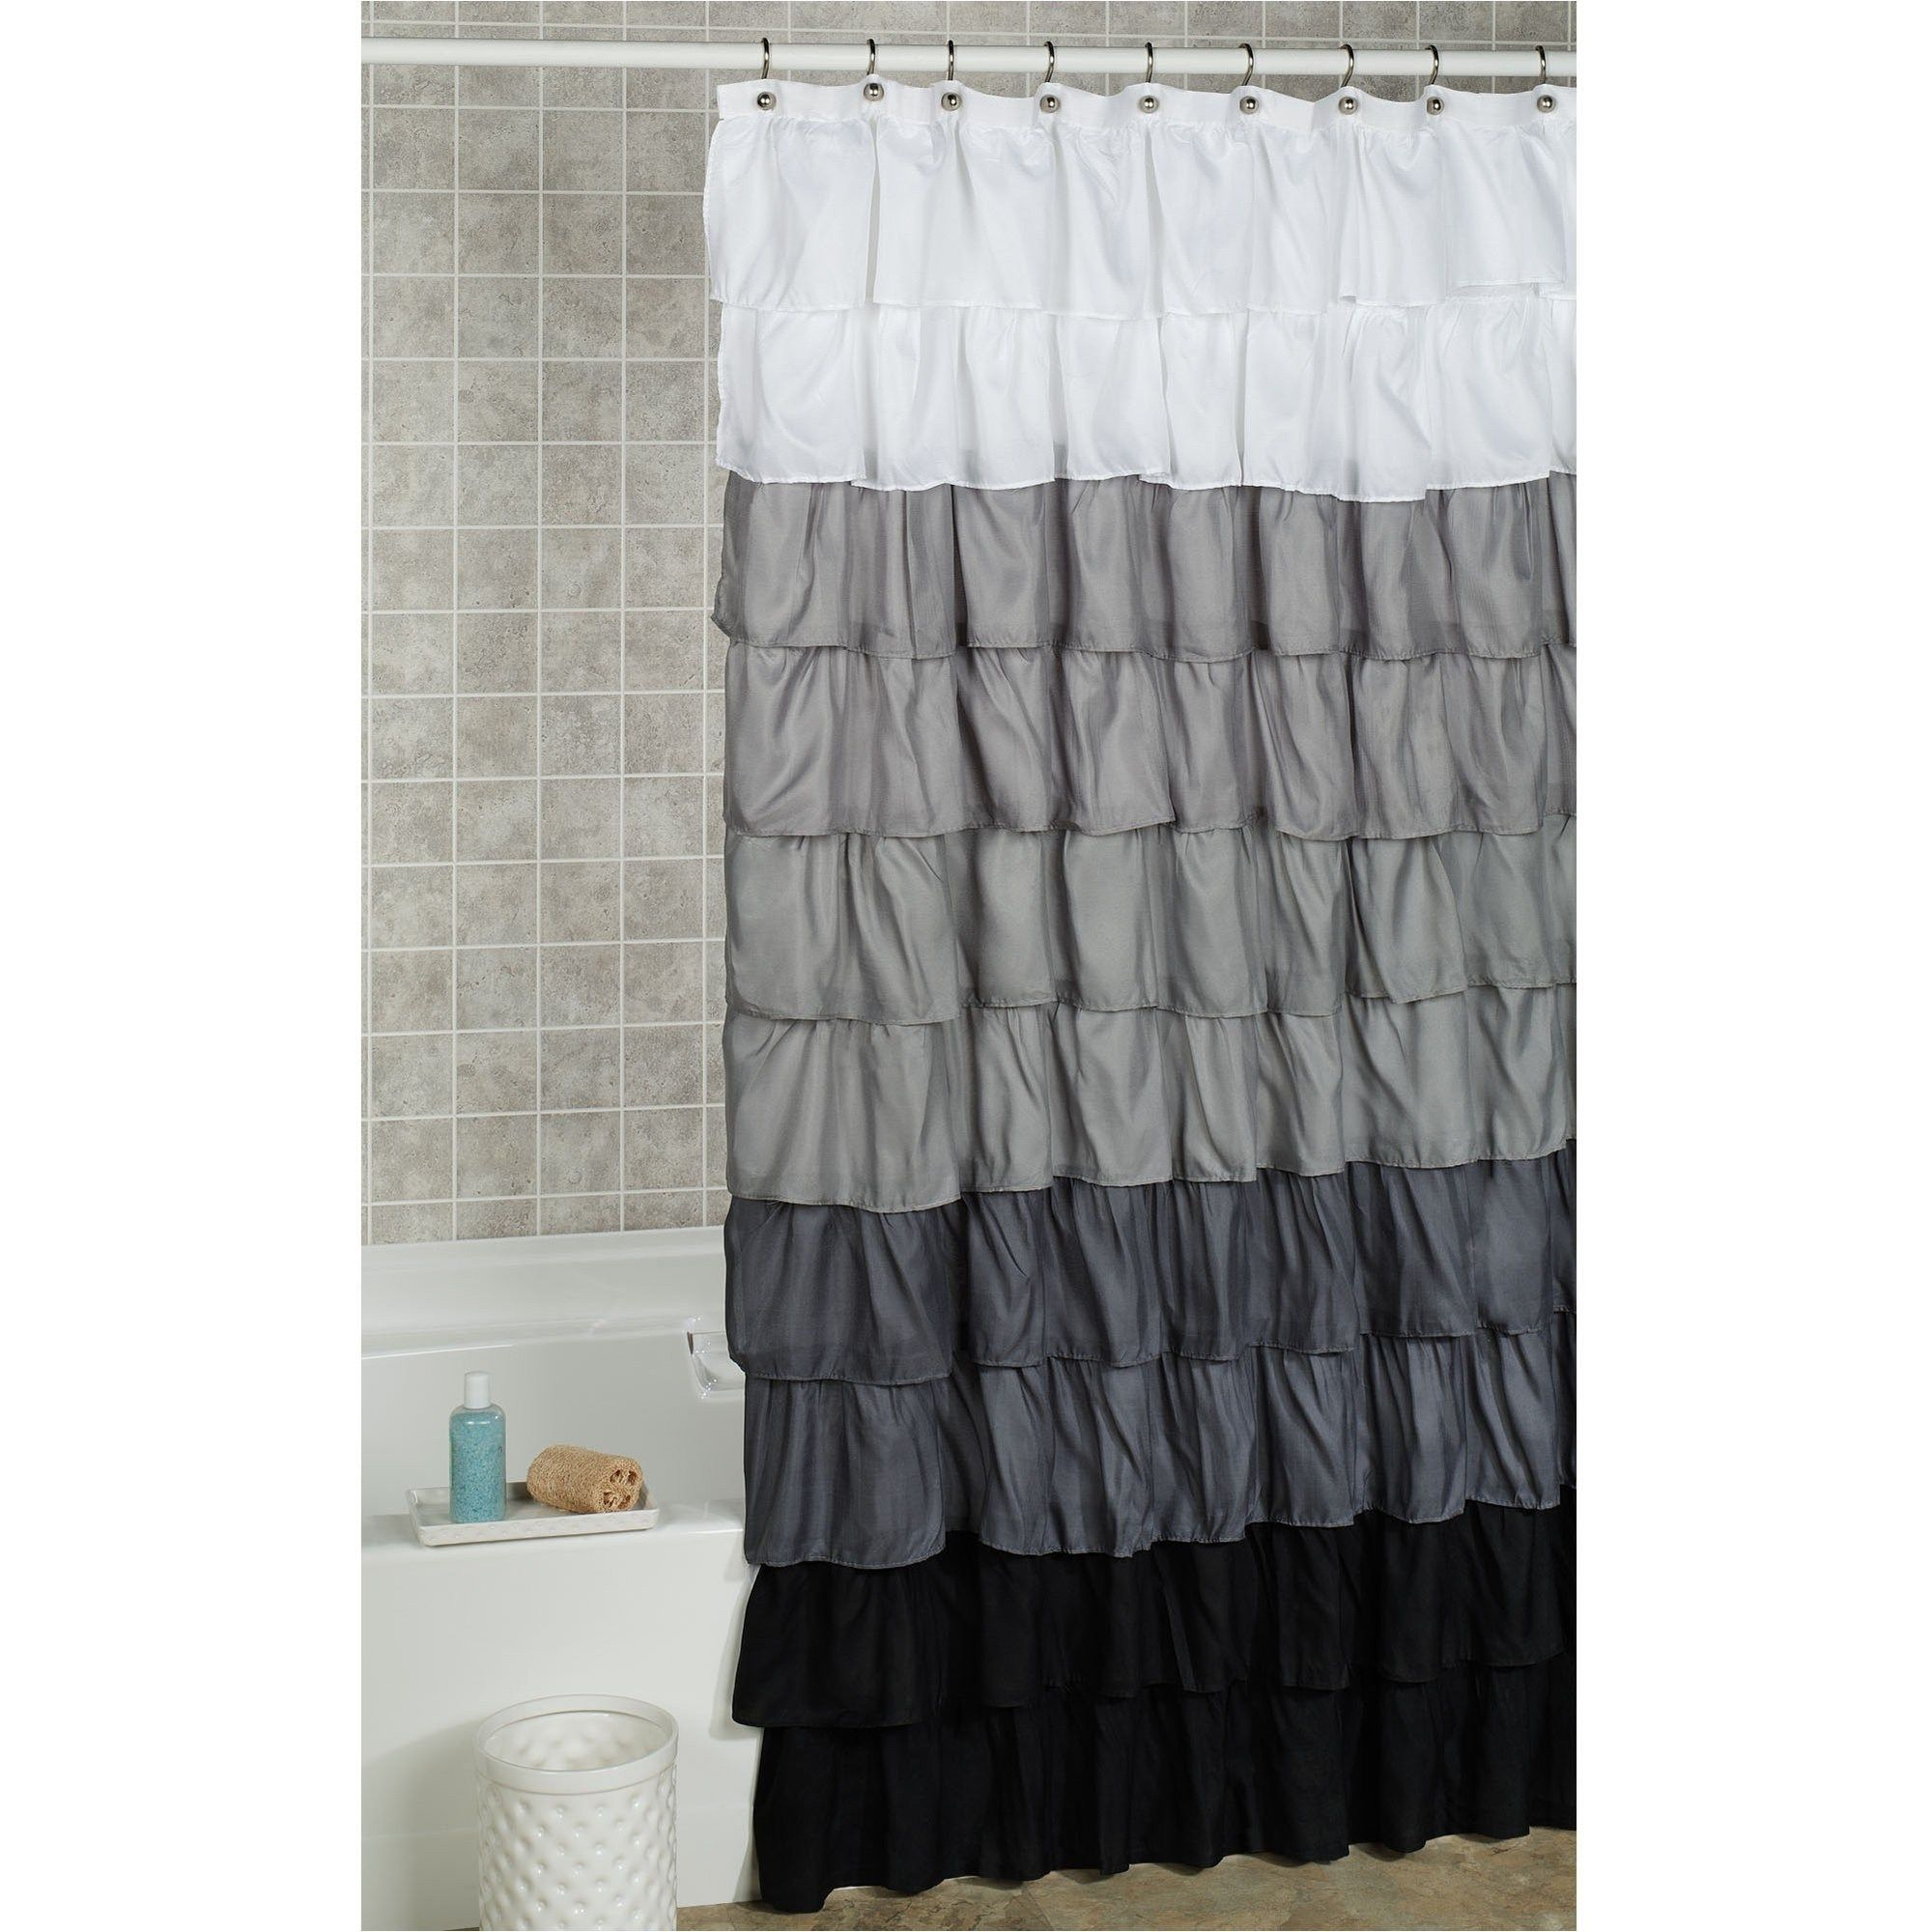 Elegant Gray Ruffle Shower Curtain Ruffle Shower Curtains Ombre